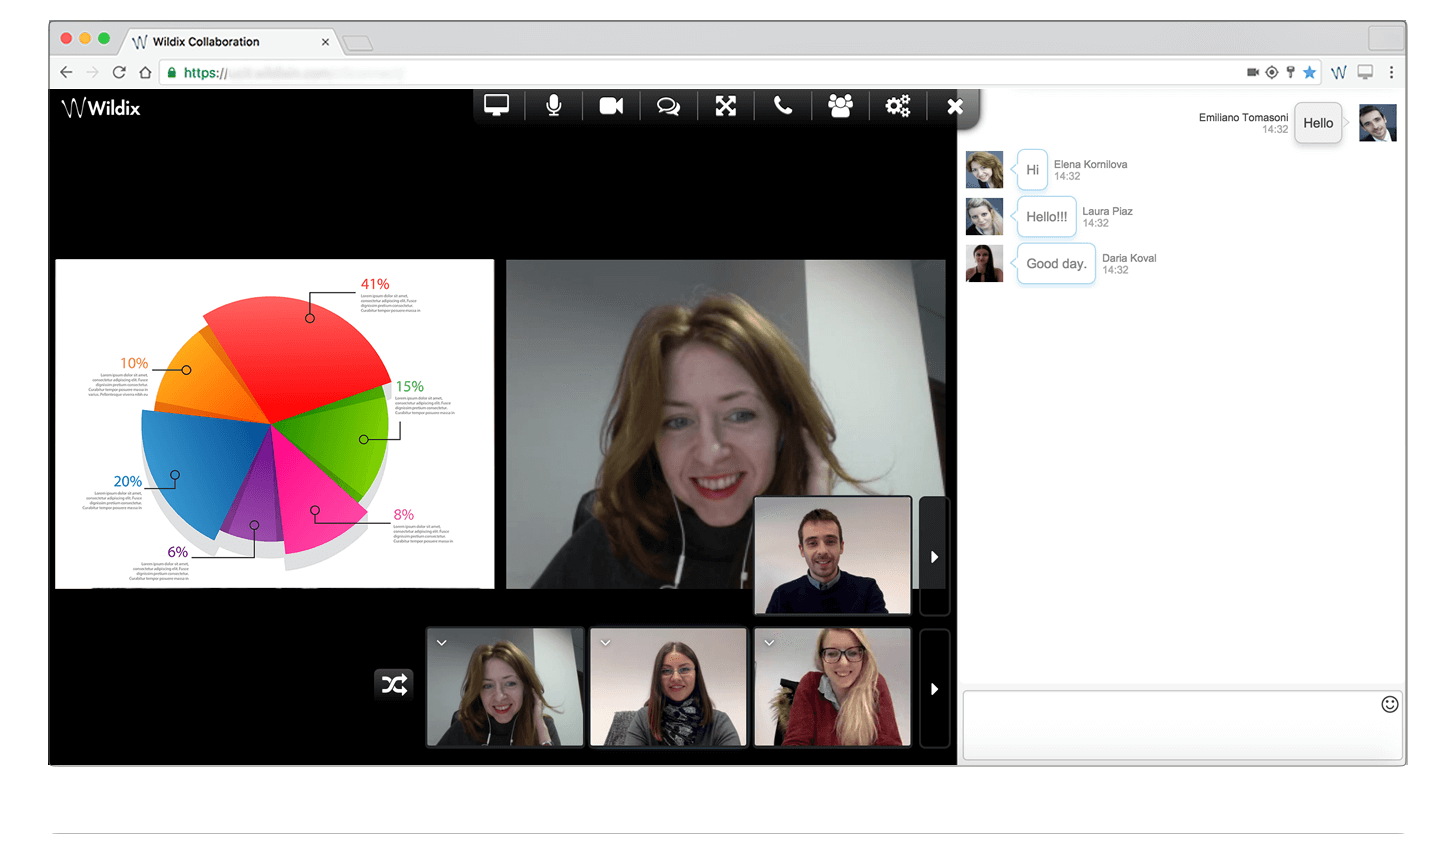 videoconference-wildix-collaboration-ok-1